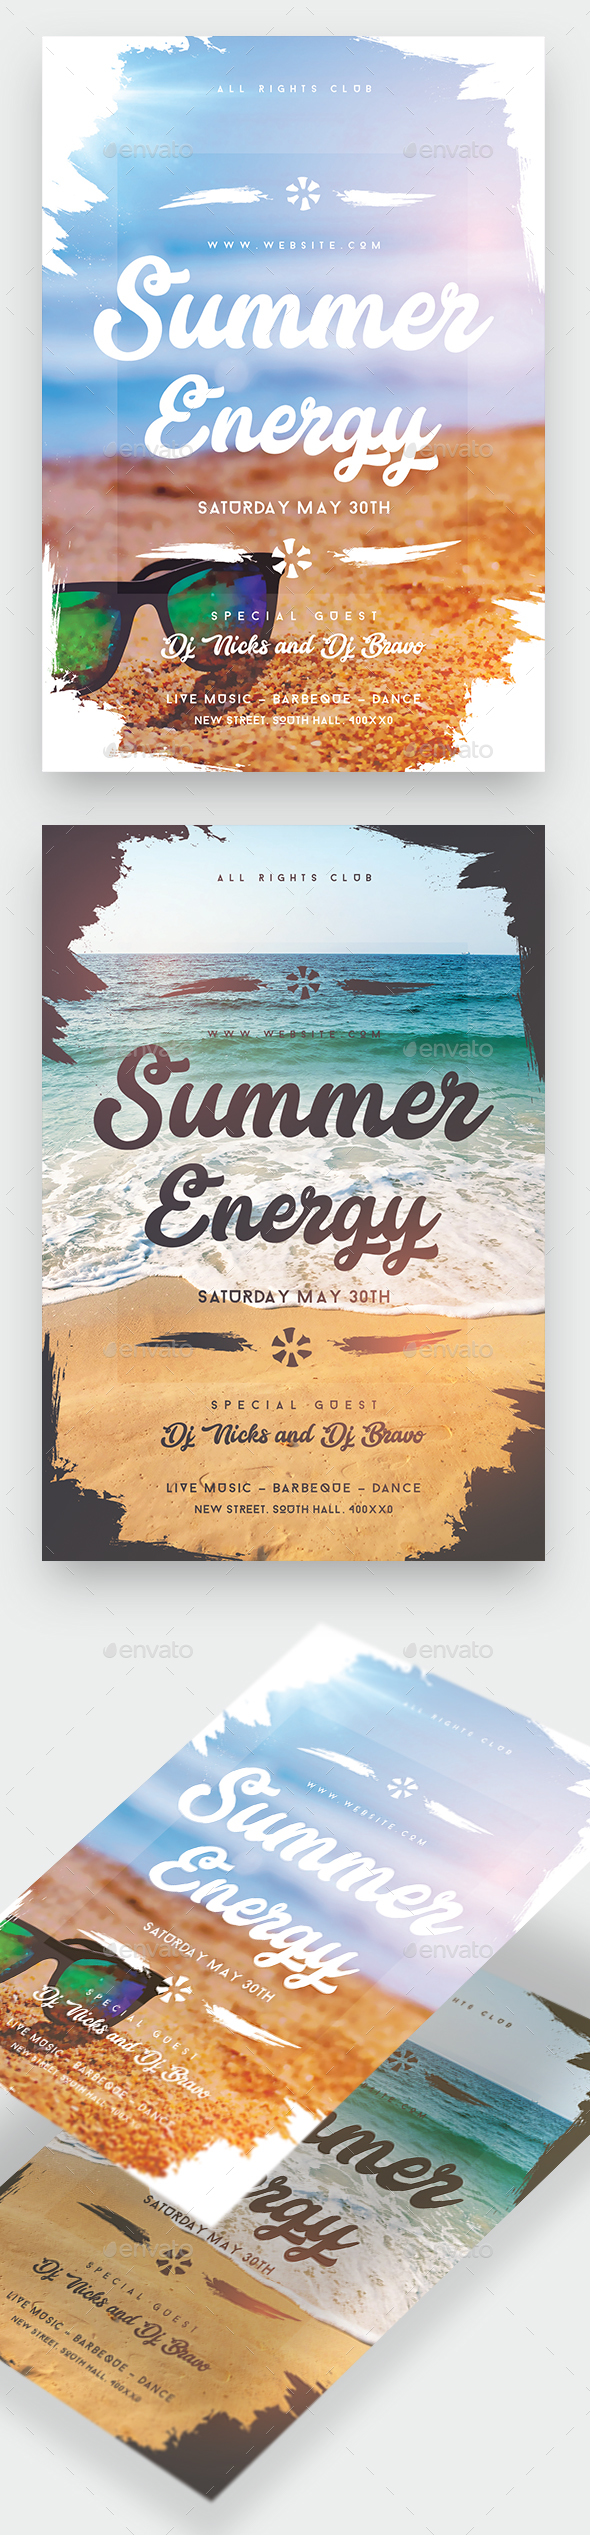 Summer Energy Party Flyer - Clubs & Parties Events